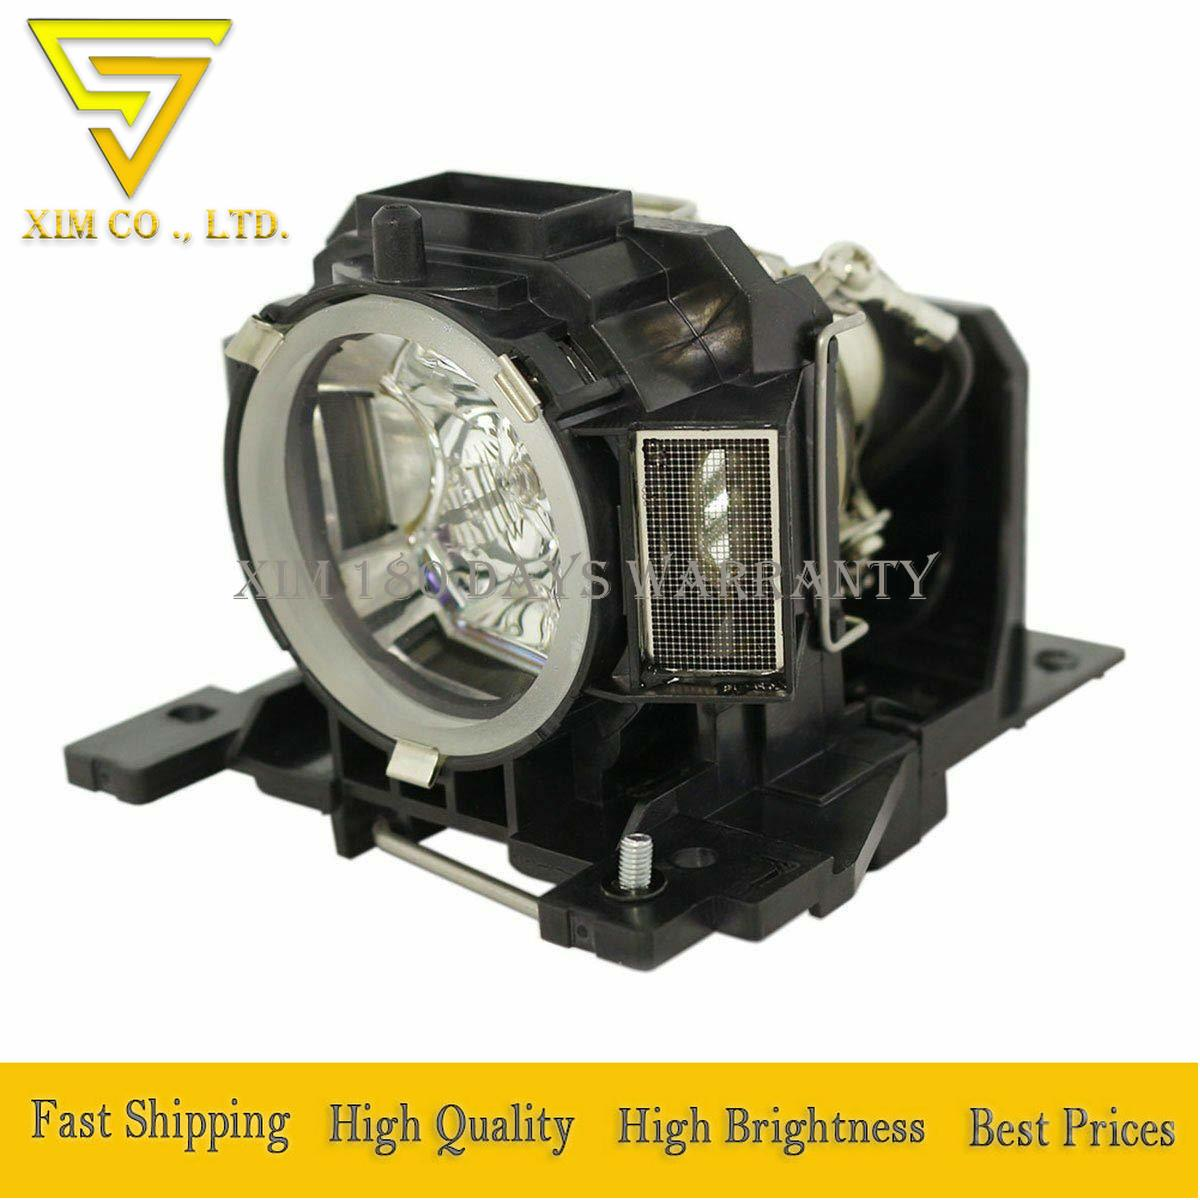 DT00893 High Quality Projector Lamp With Housing For HITACHI CP-A200/ CP-A52/ ED-A10/ ED-A101/ ED-A111/ ED-A6/ ED-A7/ HCP-A7